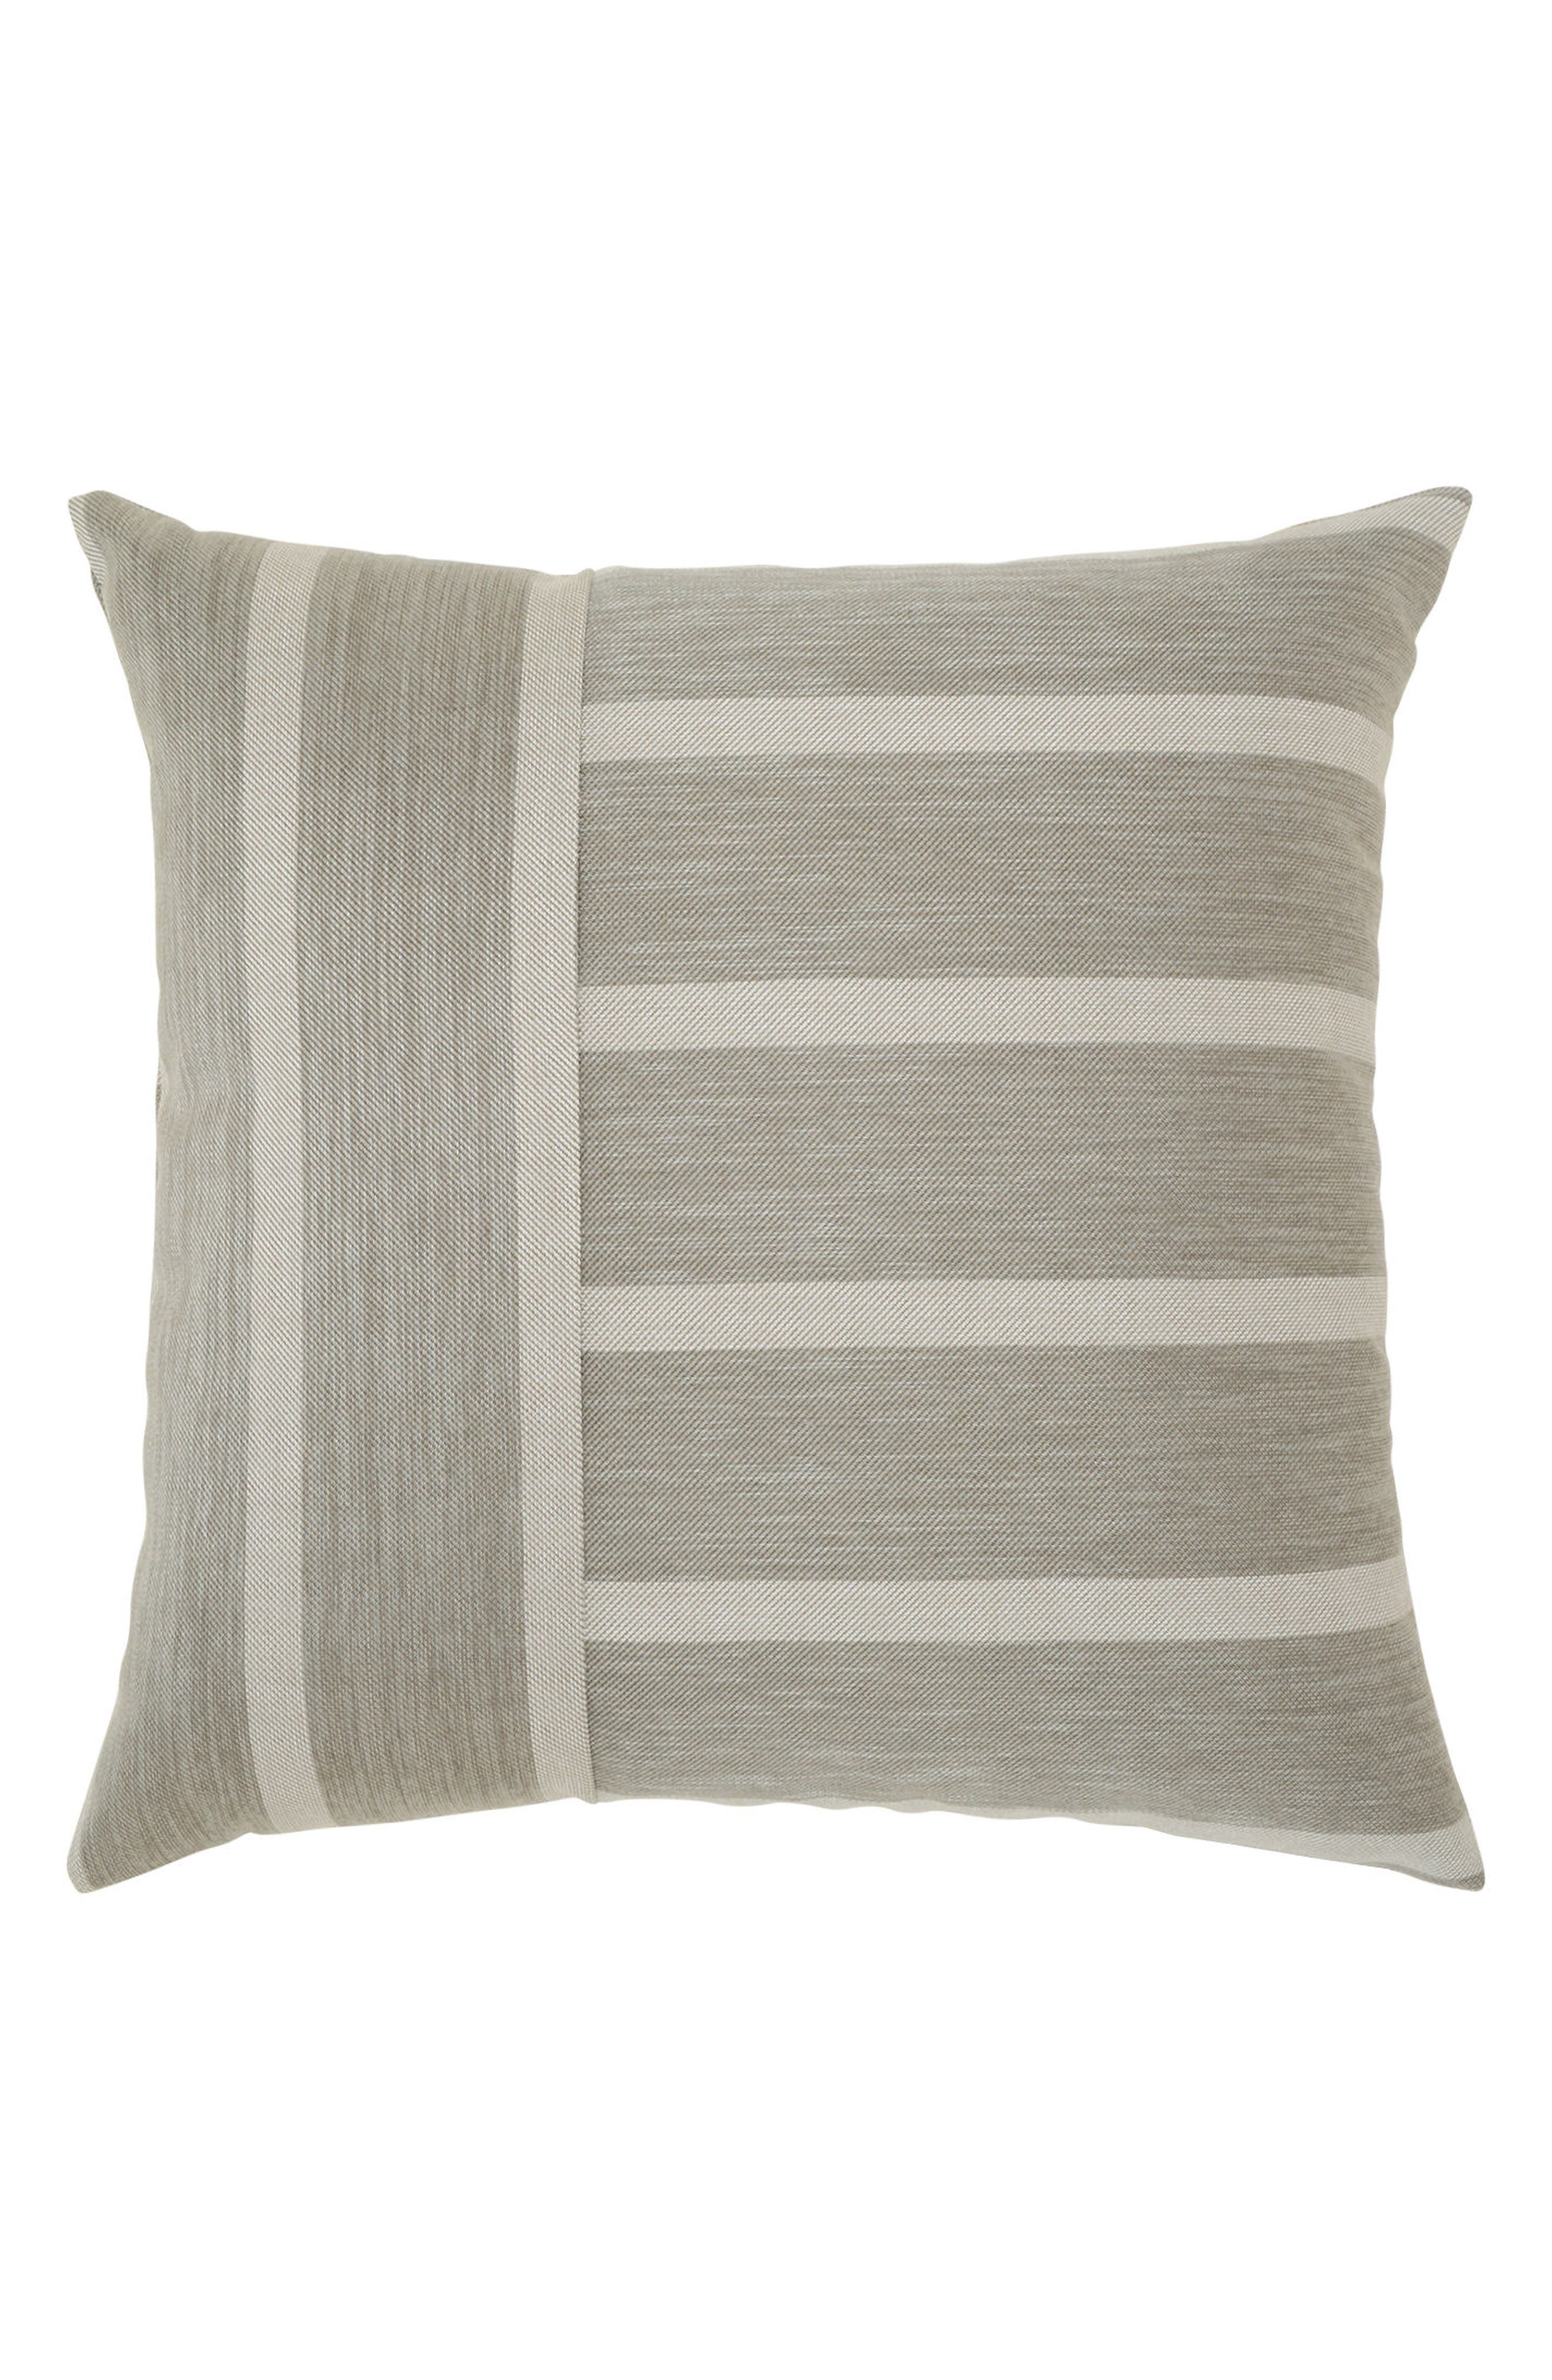 Sparkle Stripe Indoor/Outdoor Accent Pillow,                             Main thumbnail 1, color,                             Grey